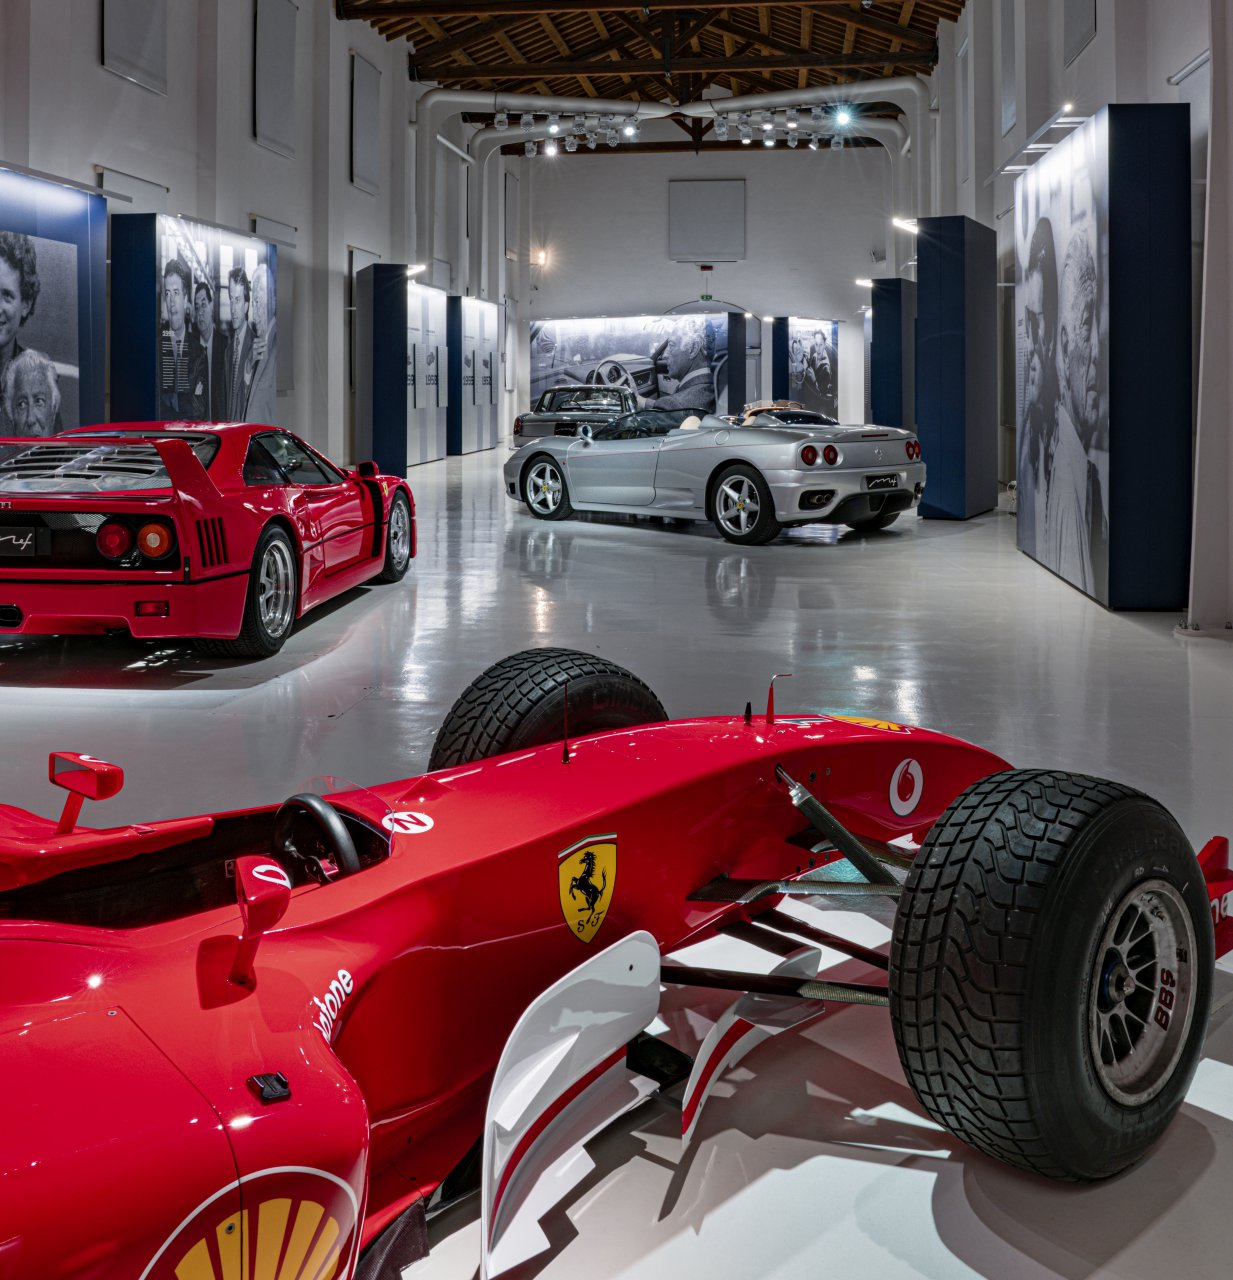 museum, Ferrari museum features one-off cars created for the 'Avvocato', ClassicCars.com Journal